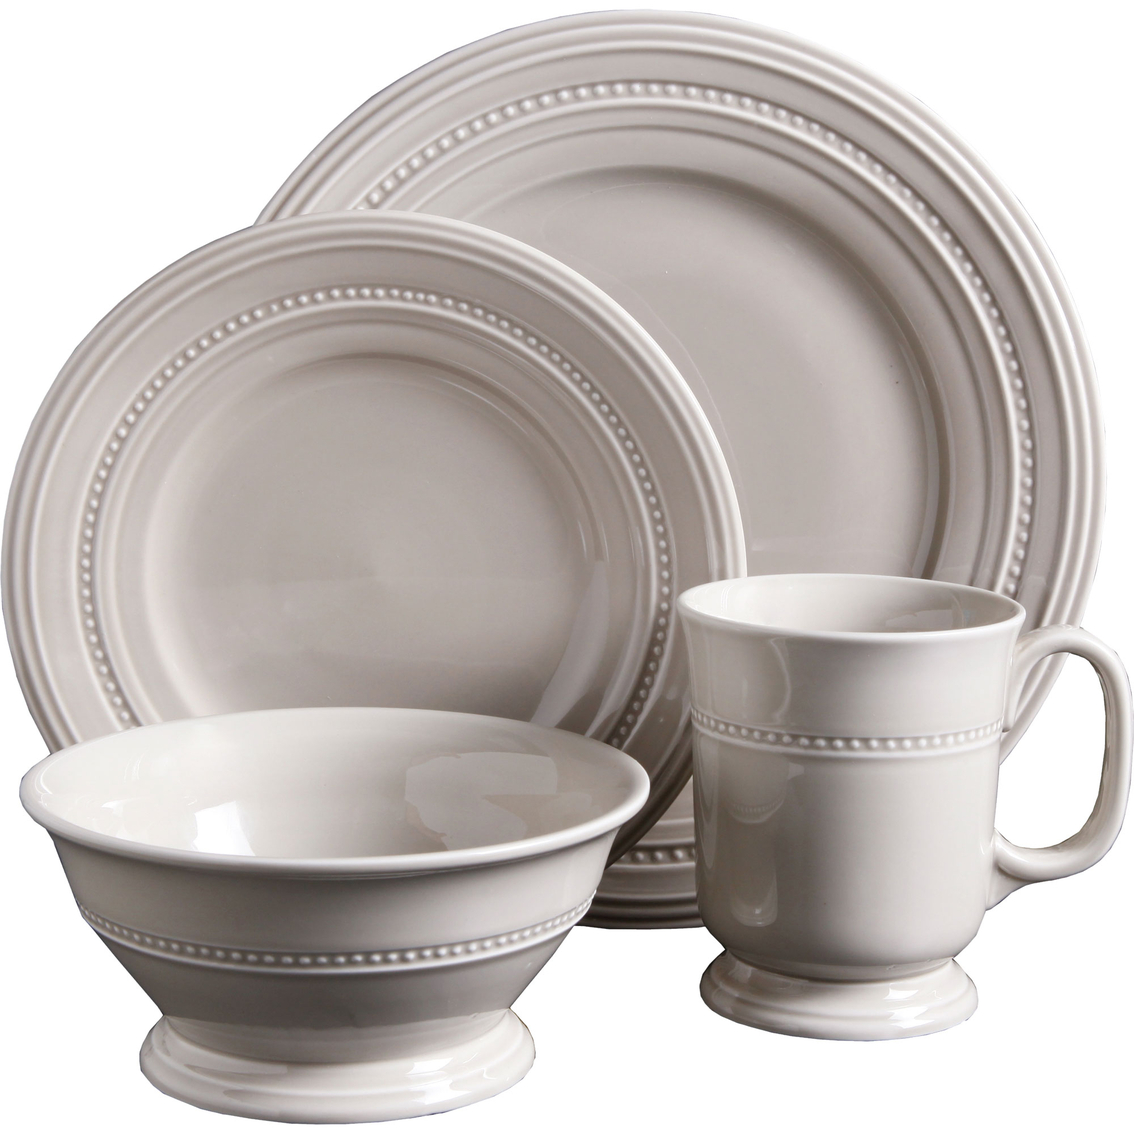 2101  sc 1 st  ShopMyExchange.com & Gibson Elite Barberware Cream 16 Pc. Dinnerware Set | Dinnerware ...